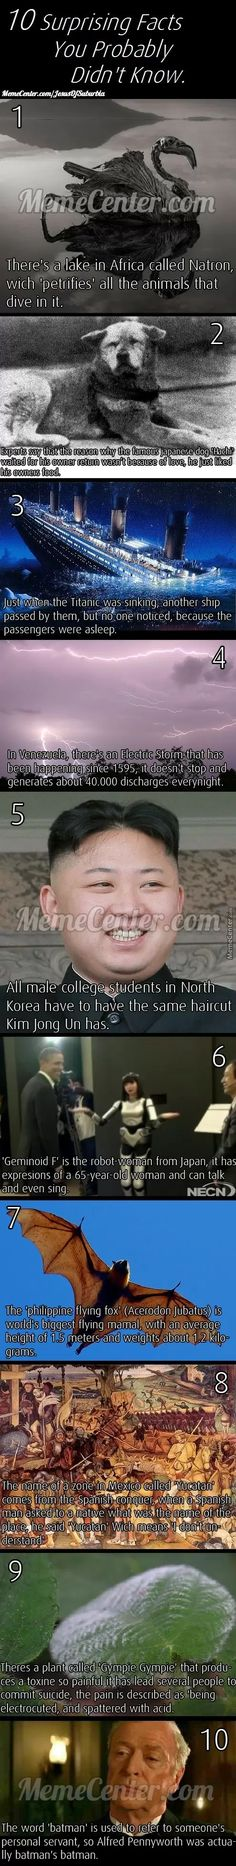 Just some facts  // funny pictures - funny photos - funny images - funny pics - funny quotes - #lol #humor #funnypictures